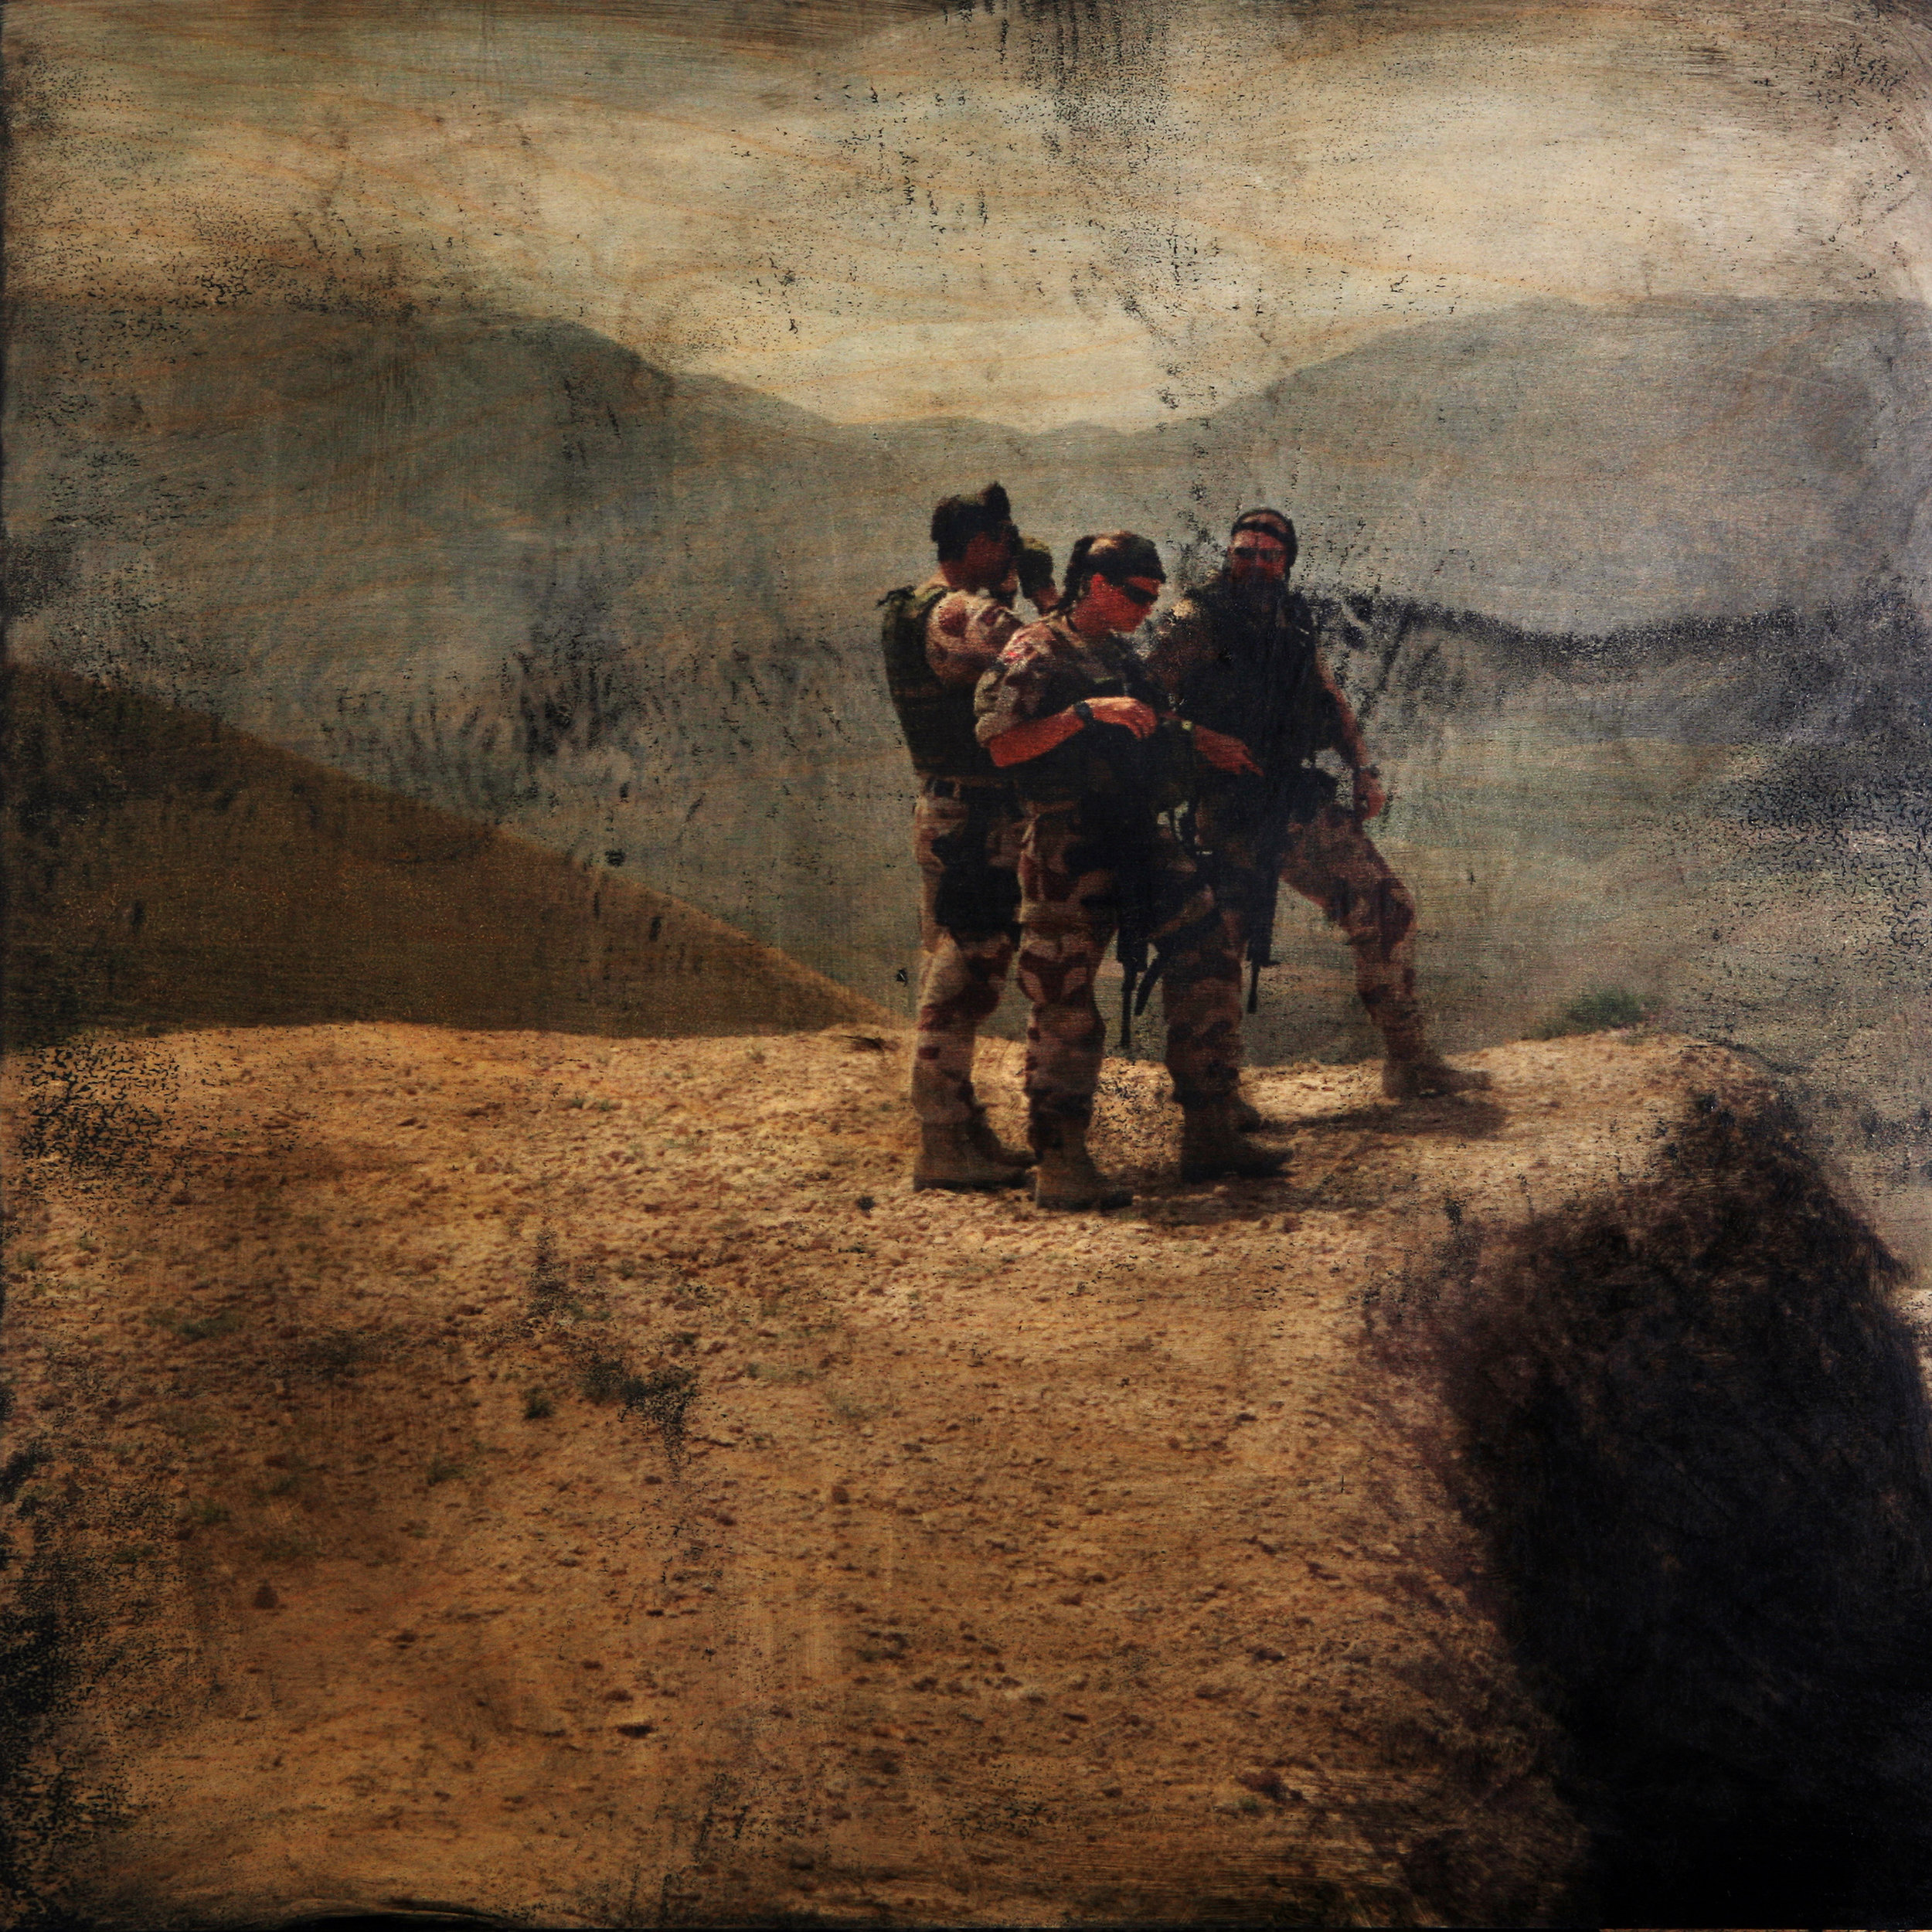 Nightwarriors  Phototransfer / Oil on Canvas 182 x 152 cm / 72 x 60 in Private Collection / United States